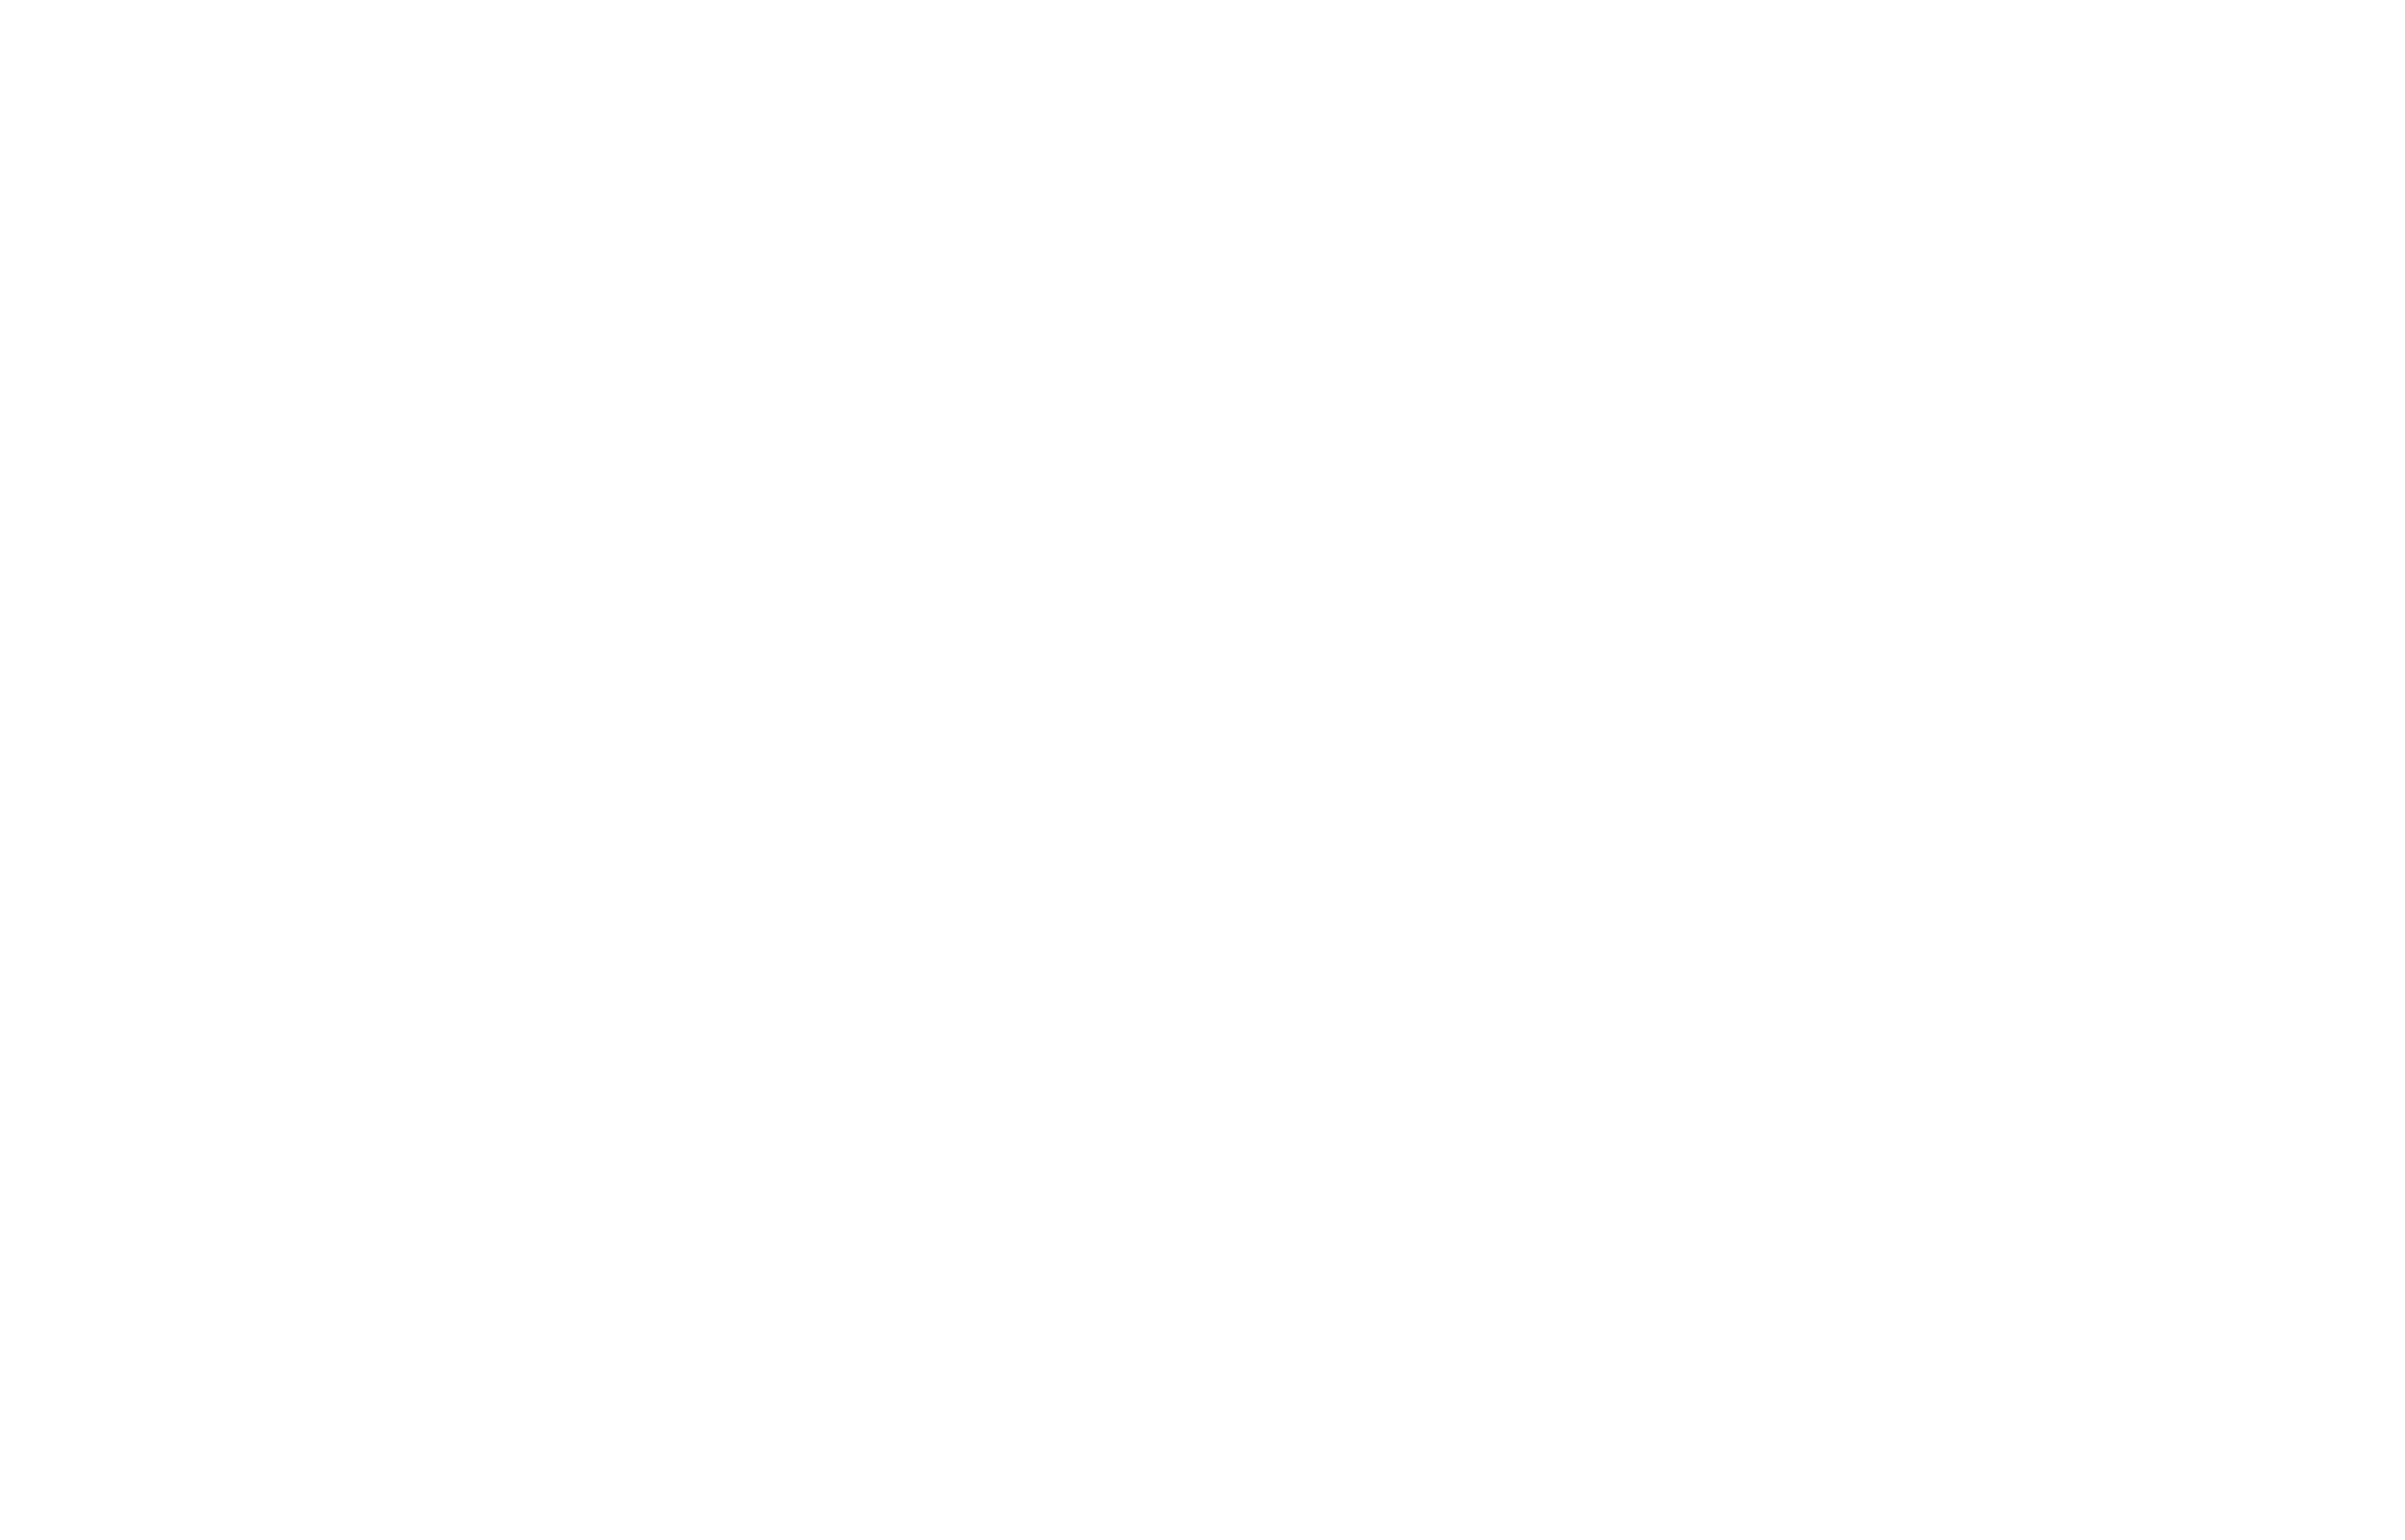 Lotus Investment Group